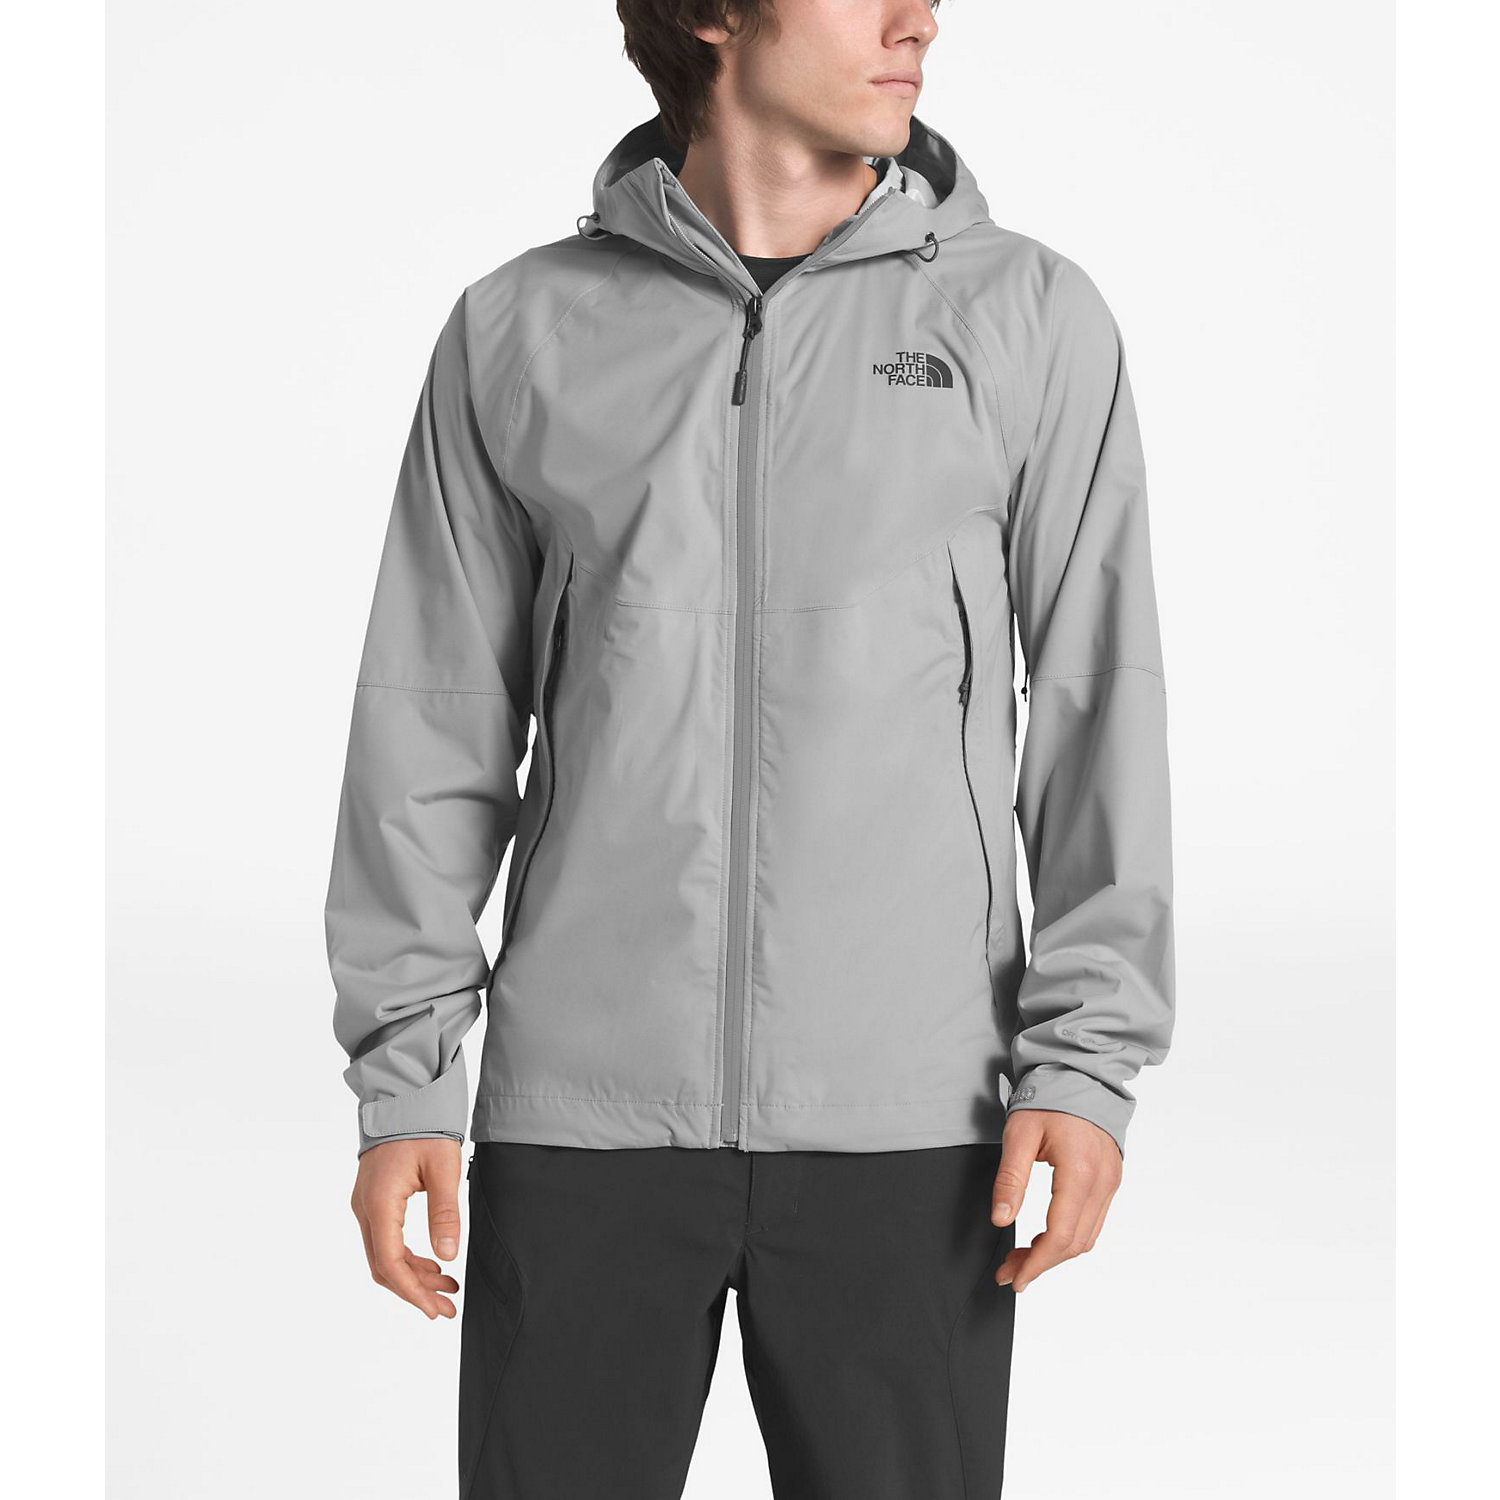 442349dd0 The North Face Men's Allproof Stretch Jacket